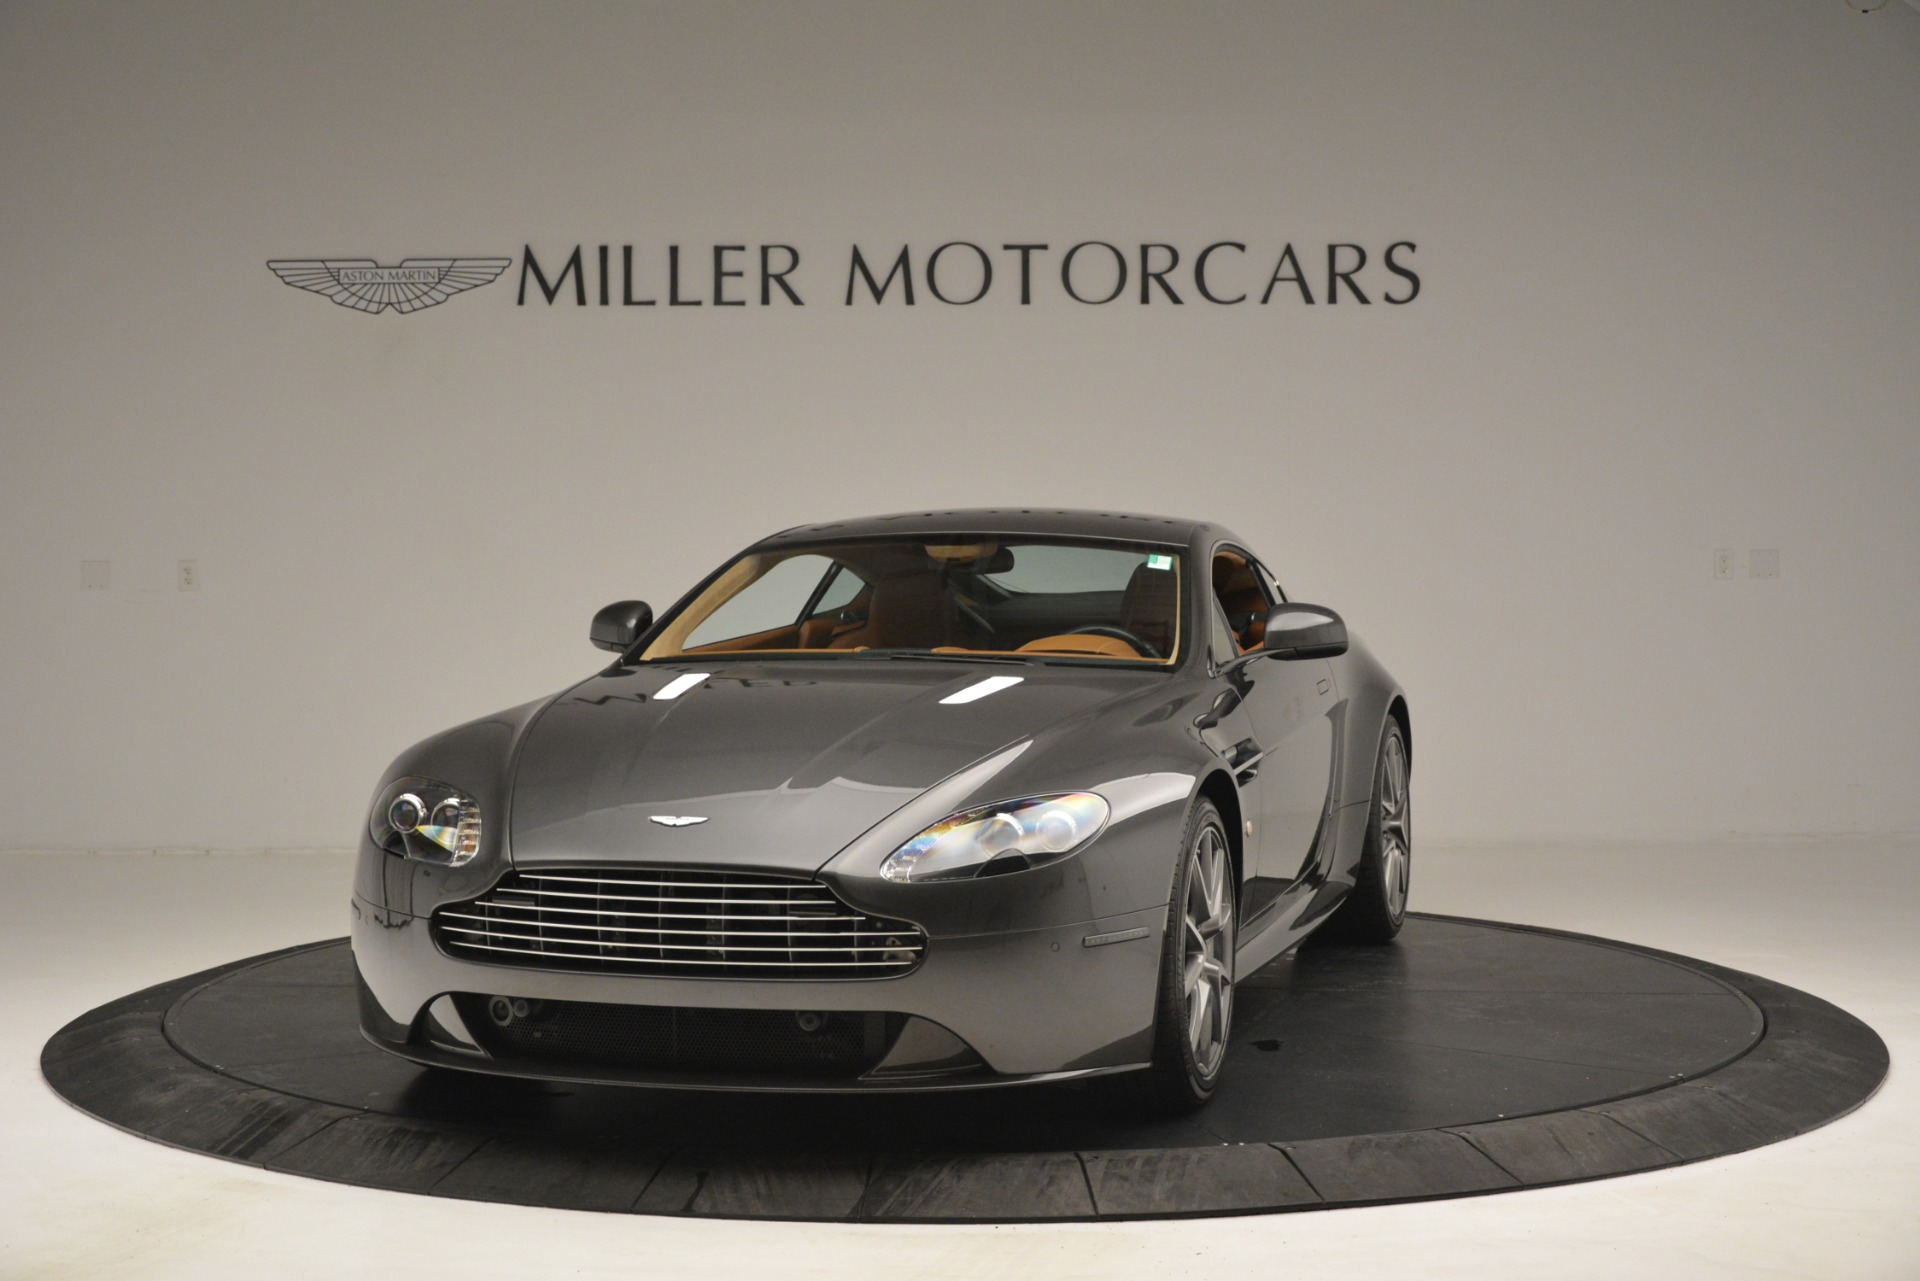 Used 2012 Aston Martin V8 Vantage S Coupe for sale Sold at Alfa Romeo of Greenwich in Greenwich CT 06830 1